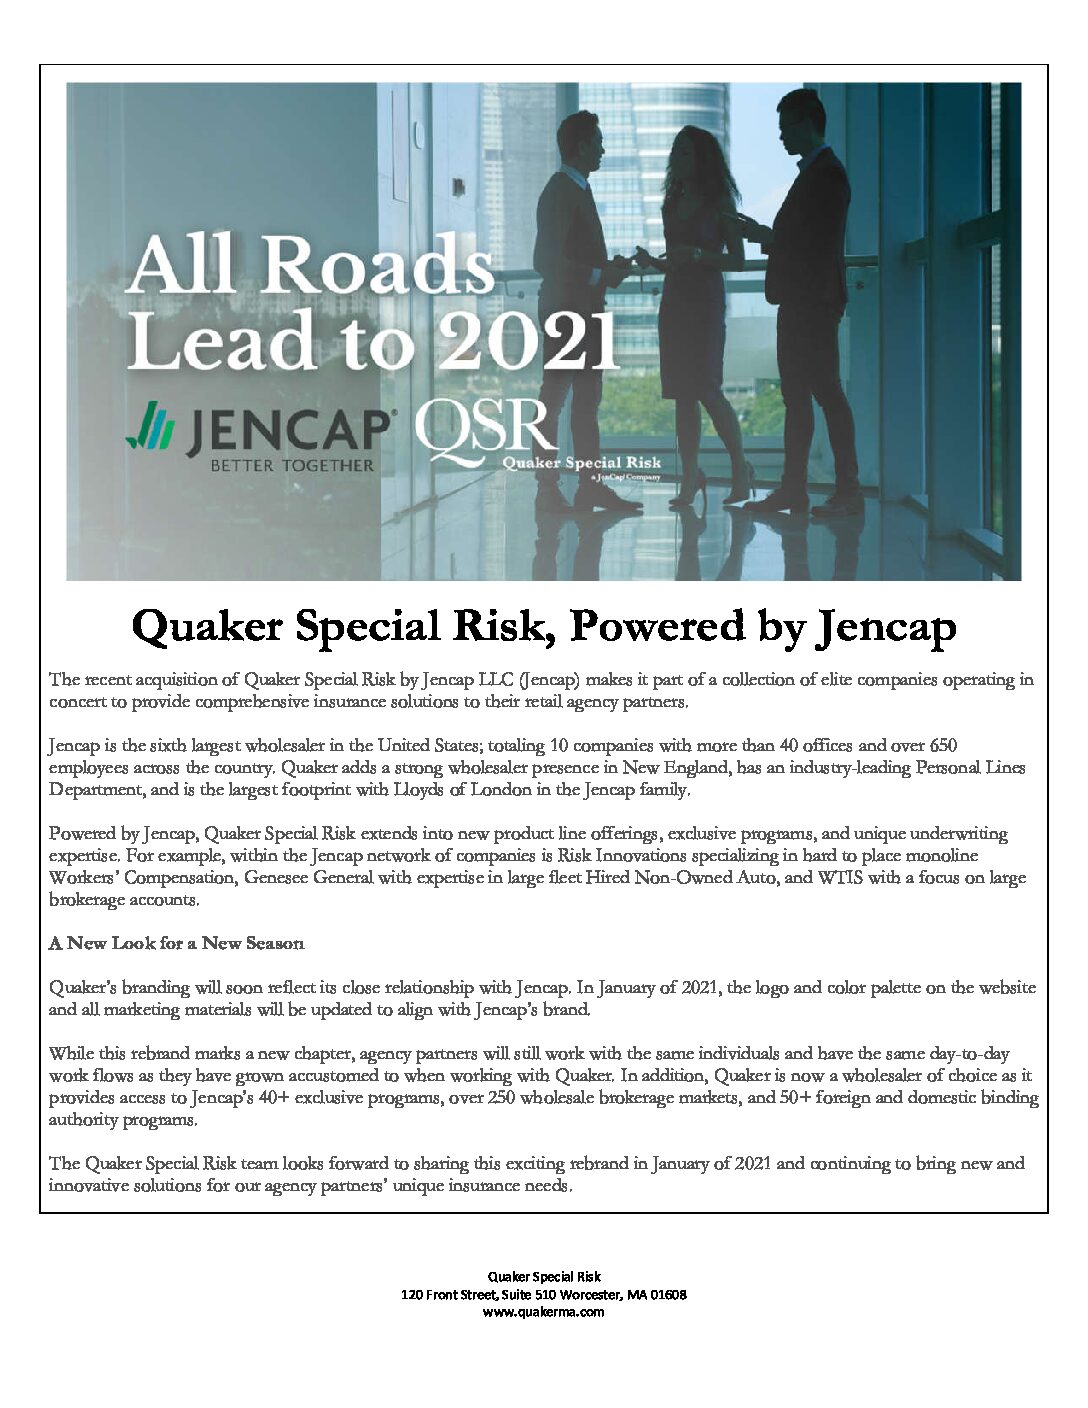 Quaker Special Risk Powered by JenCap